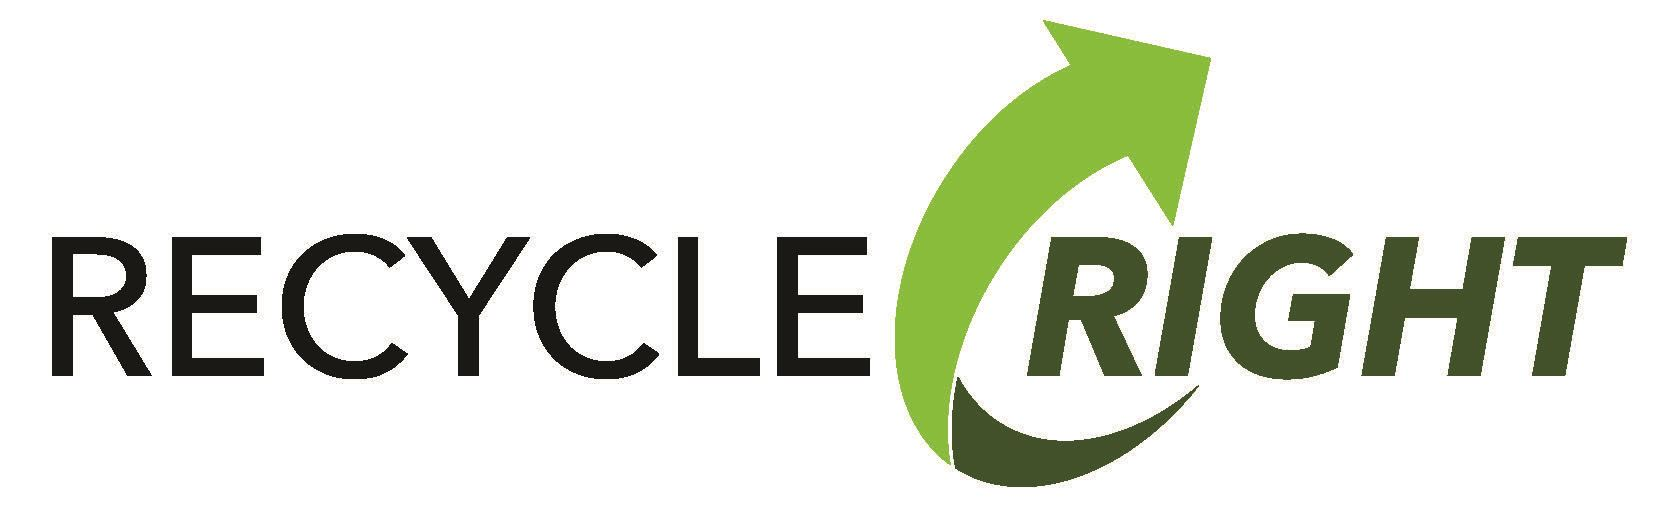 RecycleRightLogo